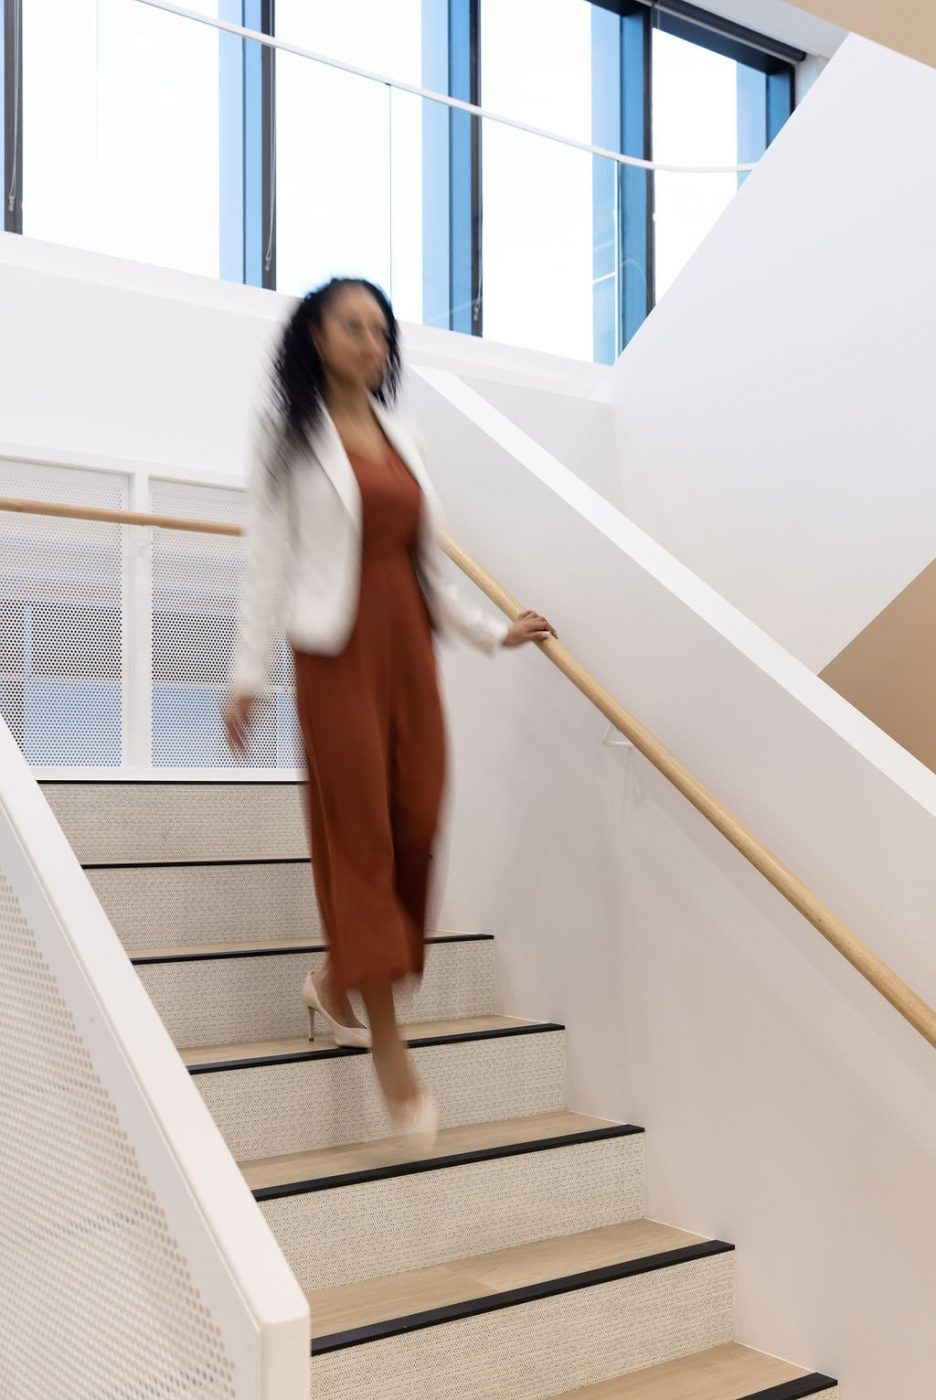 Architectural Staircase | Ramsay Health Care | Active Metal 05